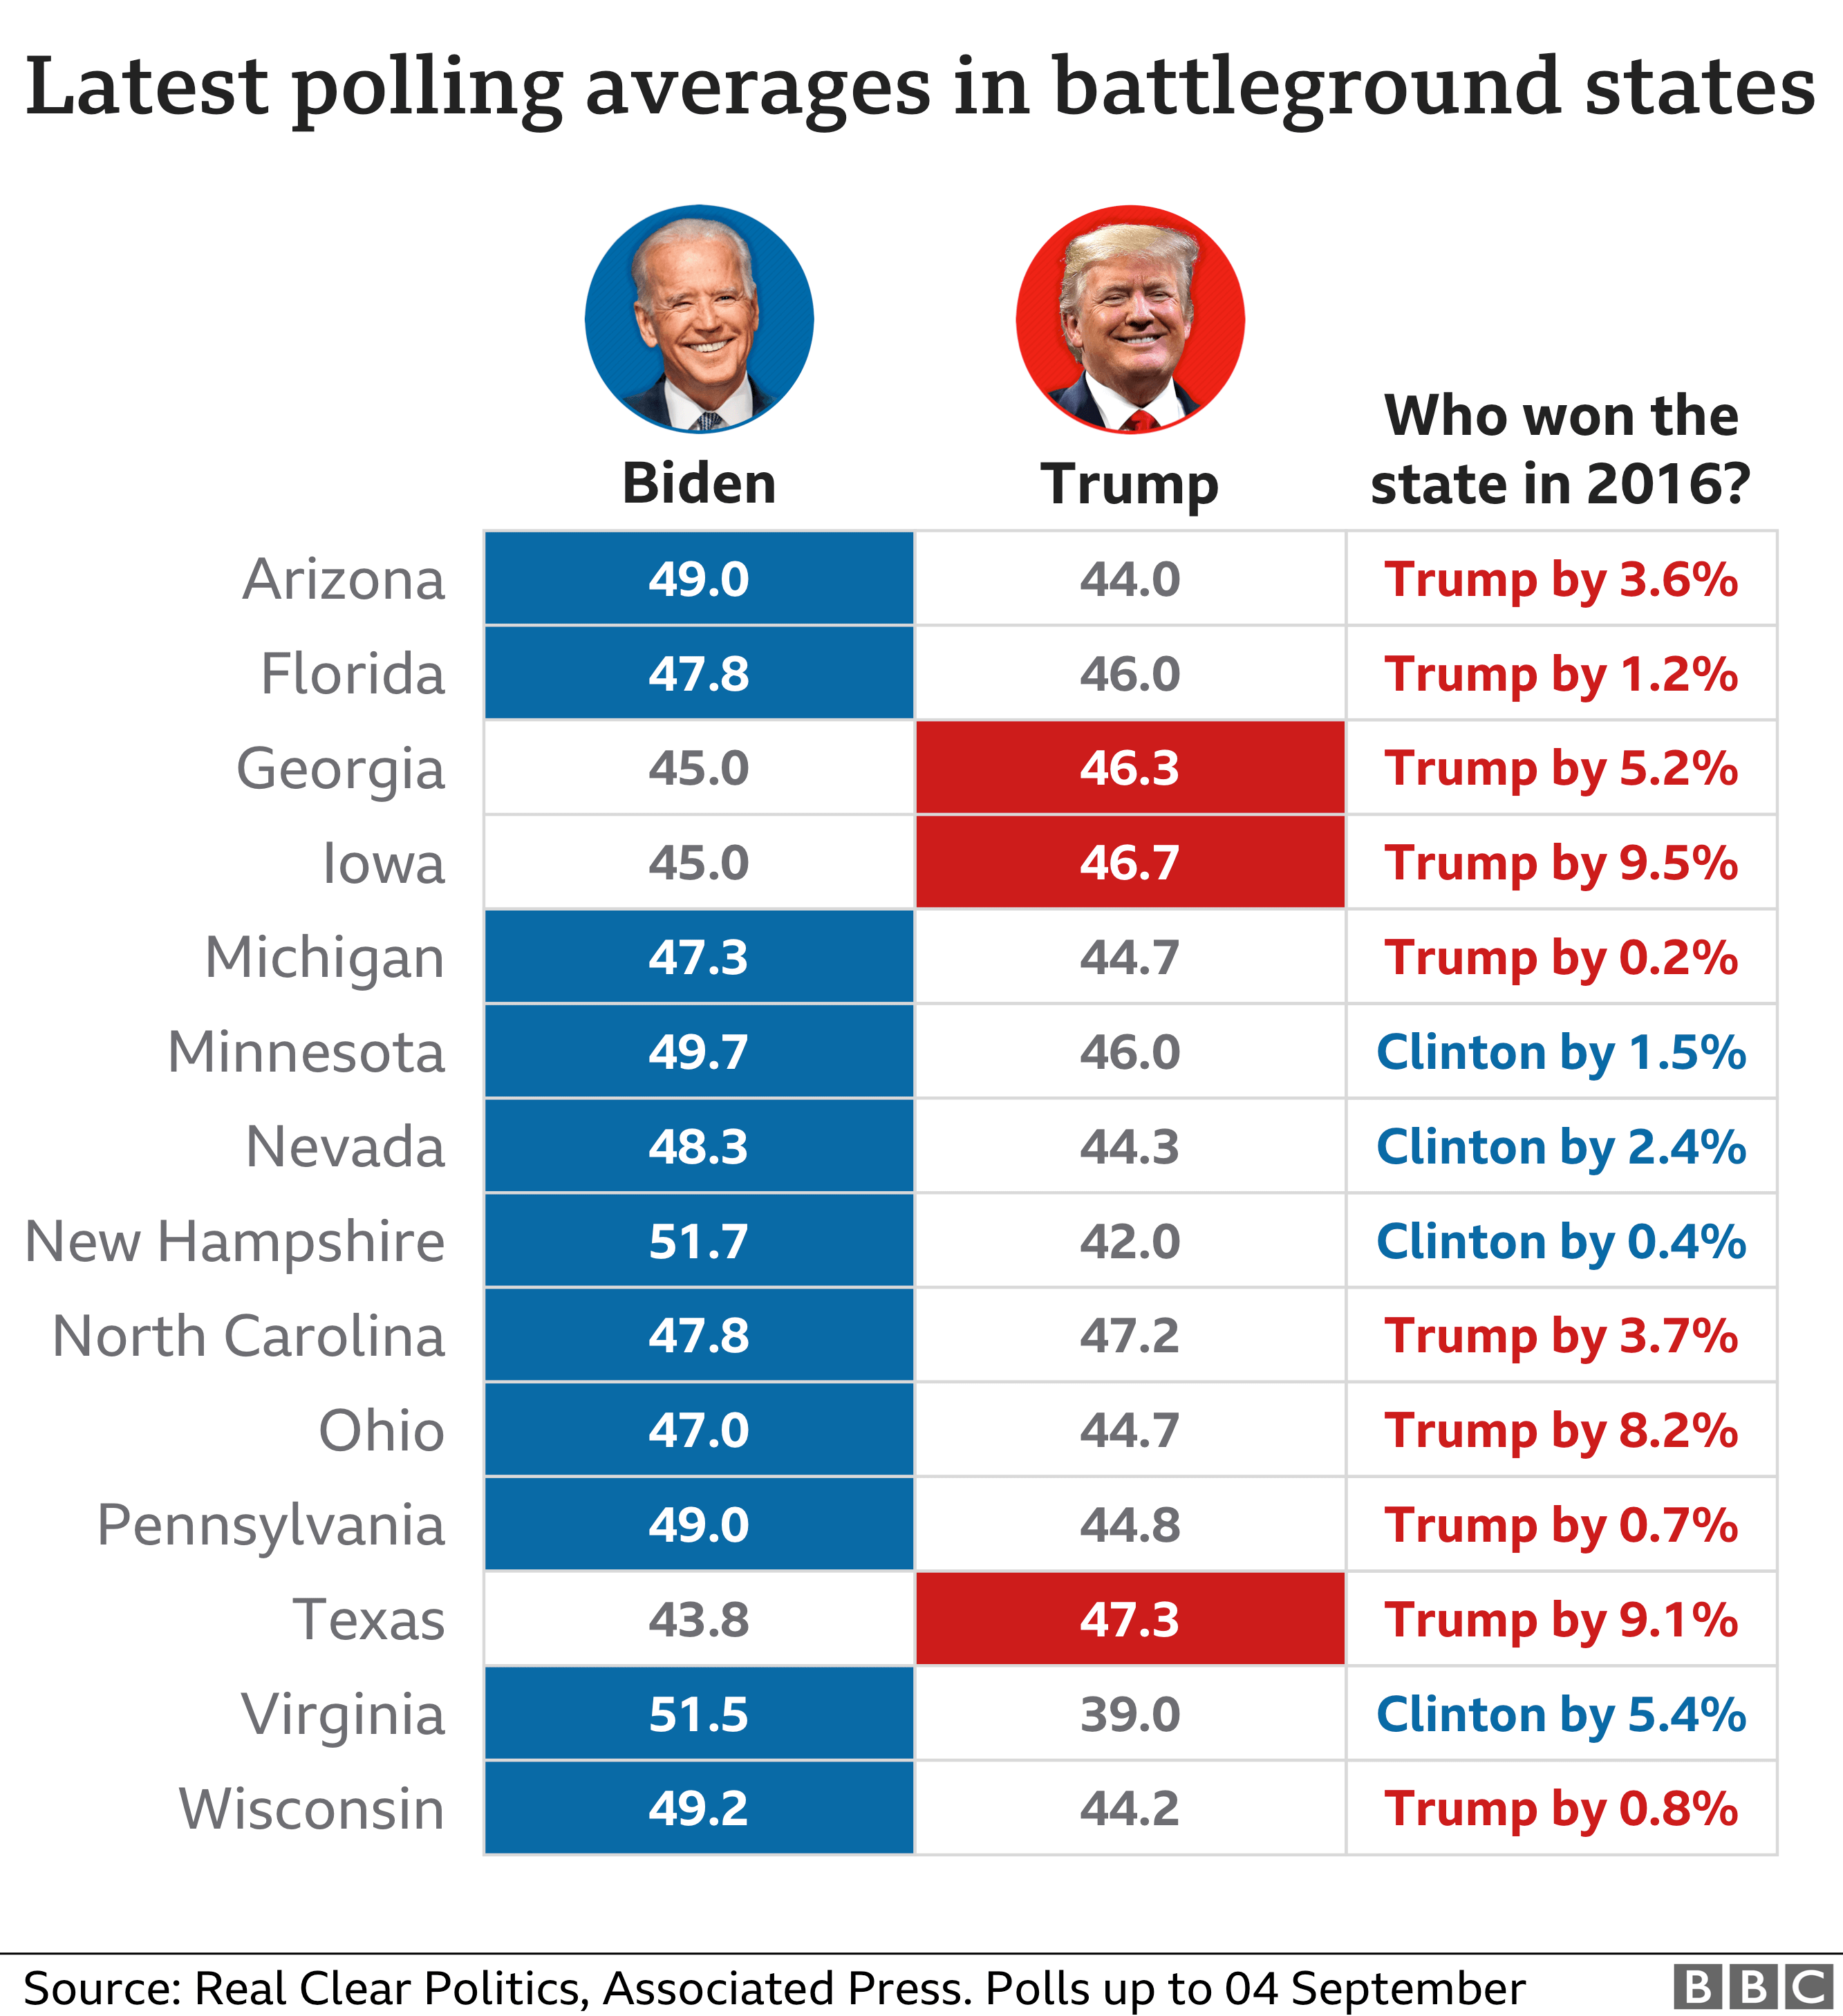 Table showing the latest polling averages for Donald Trump and Joe Biden in key states. Biden leads in most of them at the moment